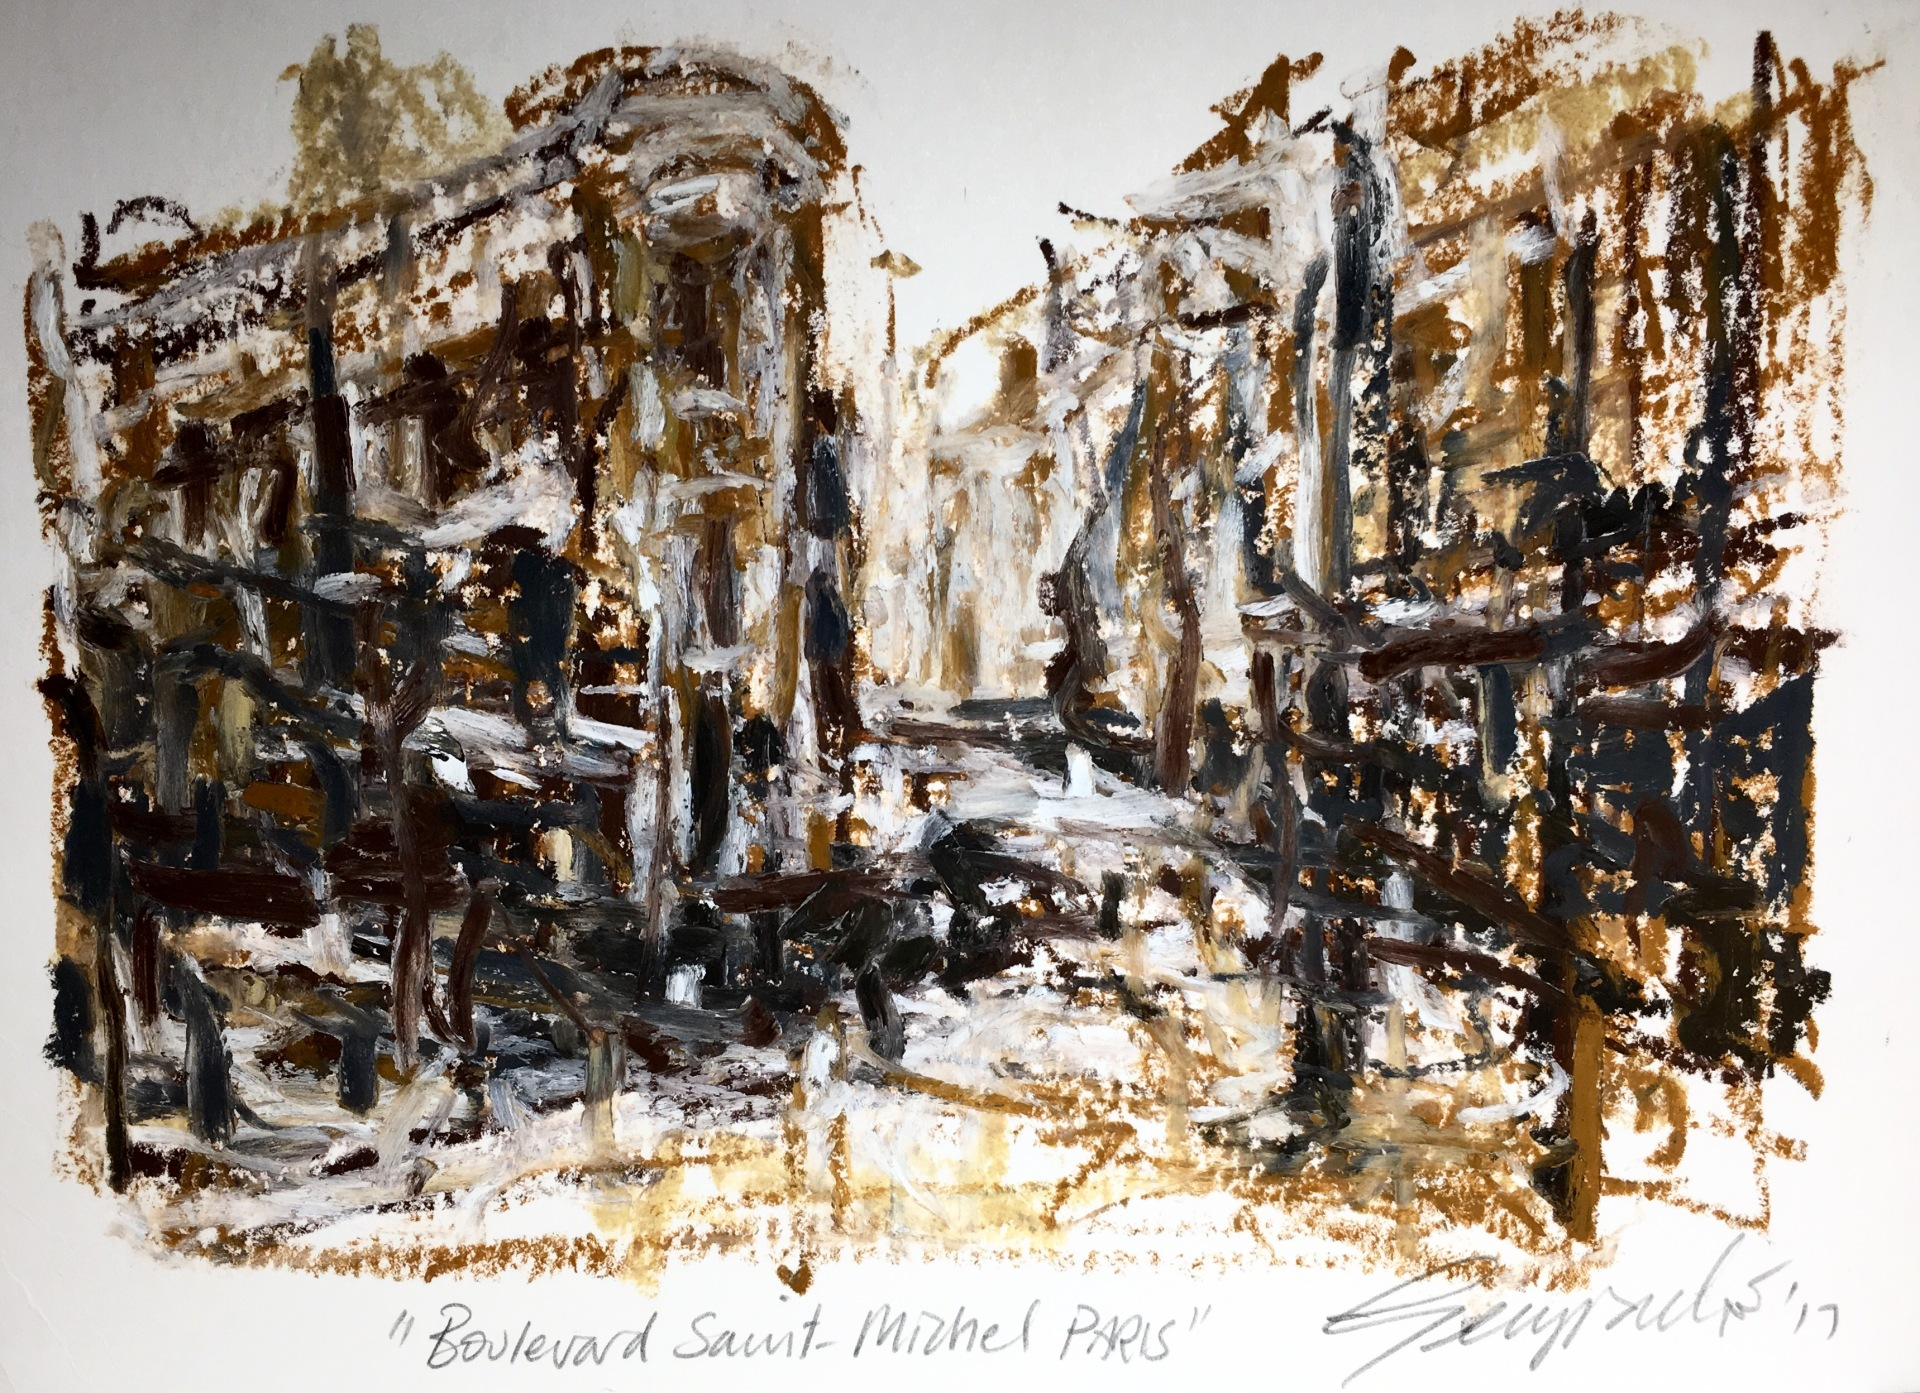 Boulevard Saint Michel Paris (SOLD)